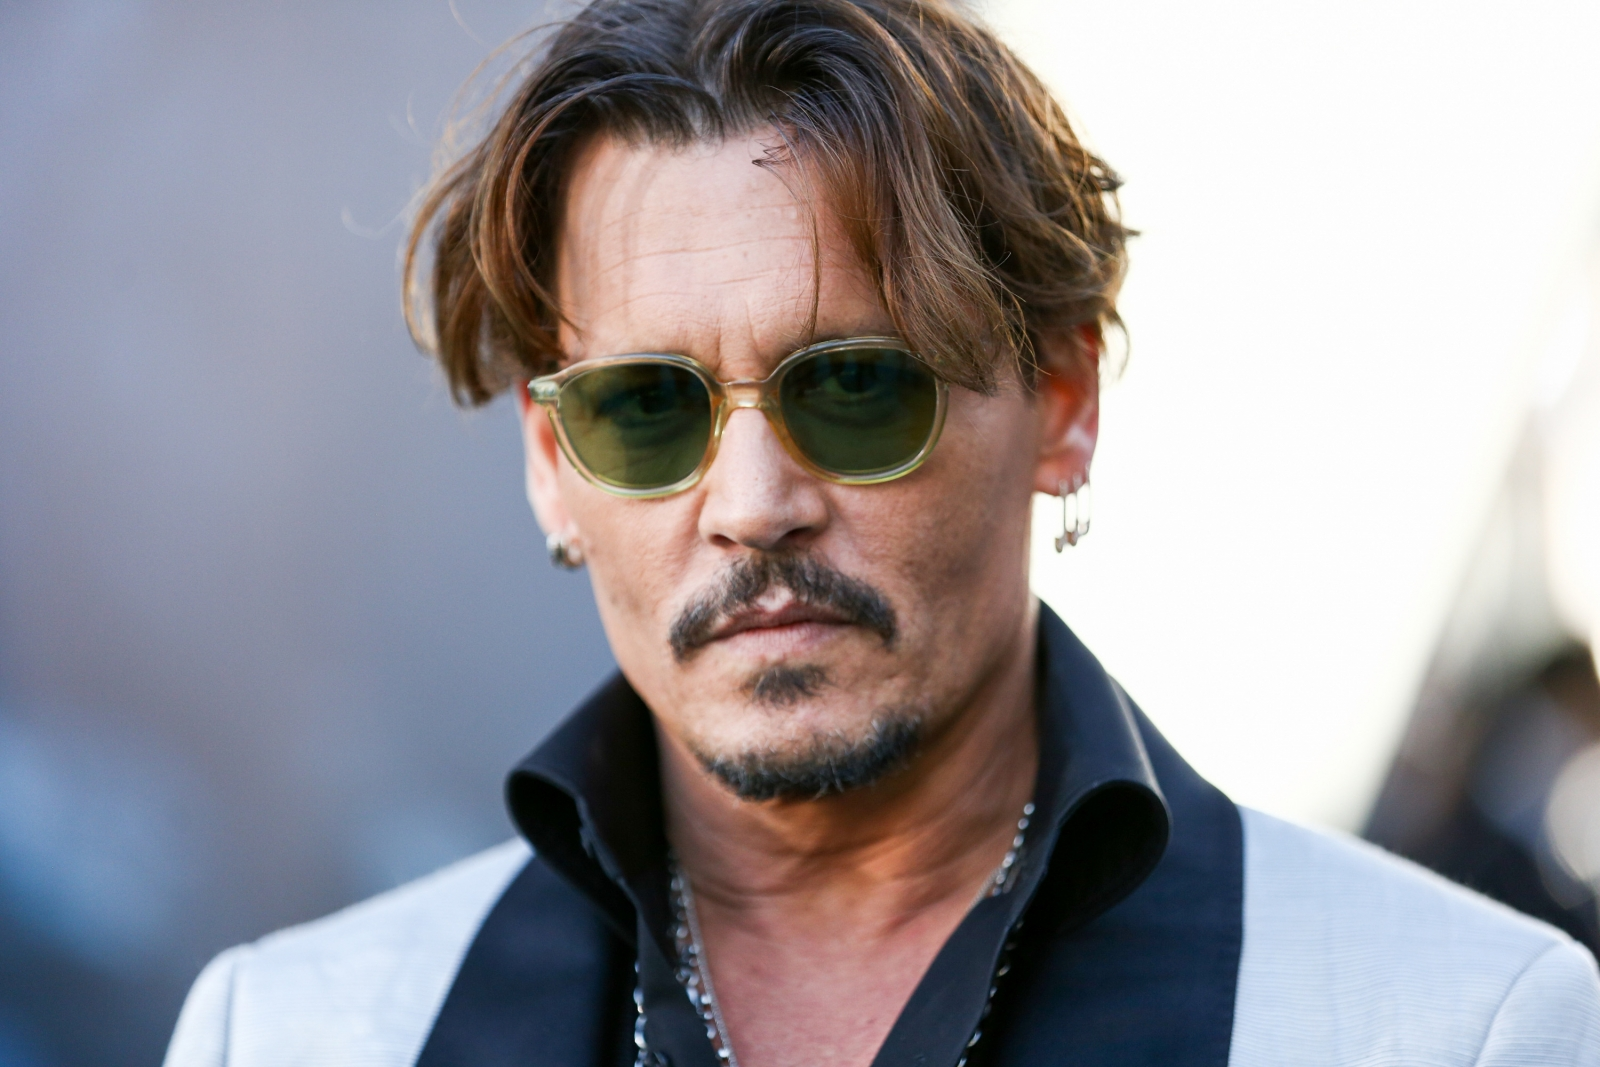 Johnny Depp 75m Movie Salary Revealed In Frantic Emails